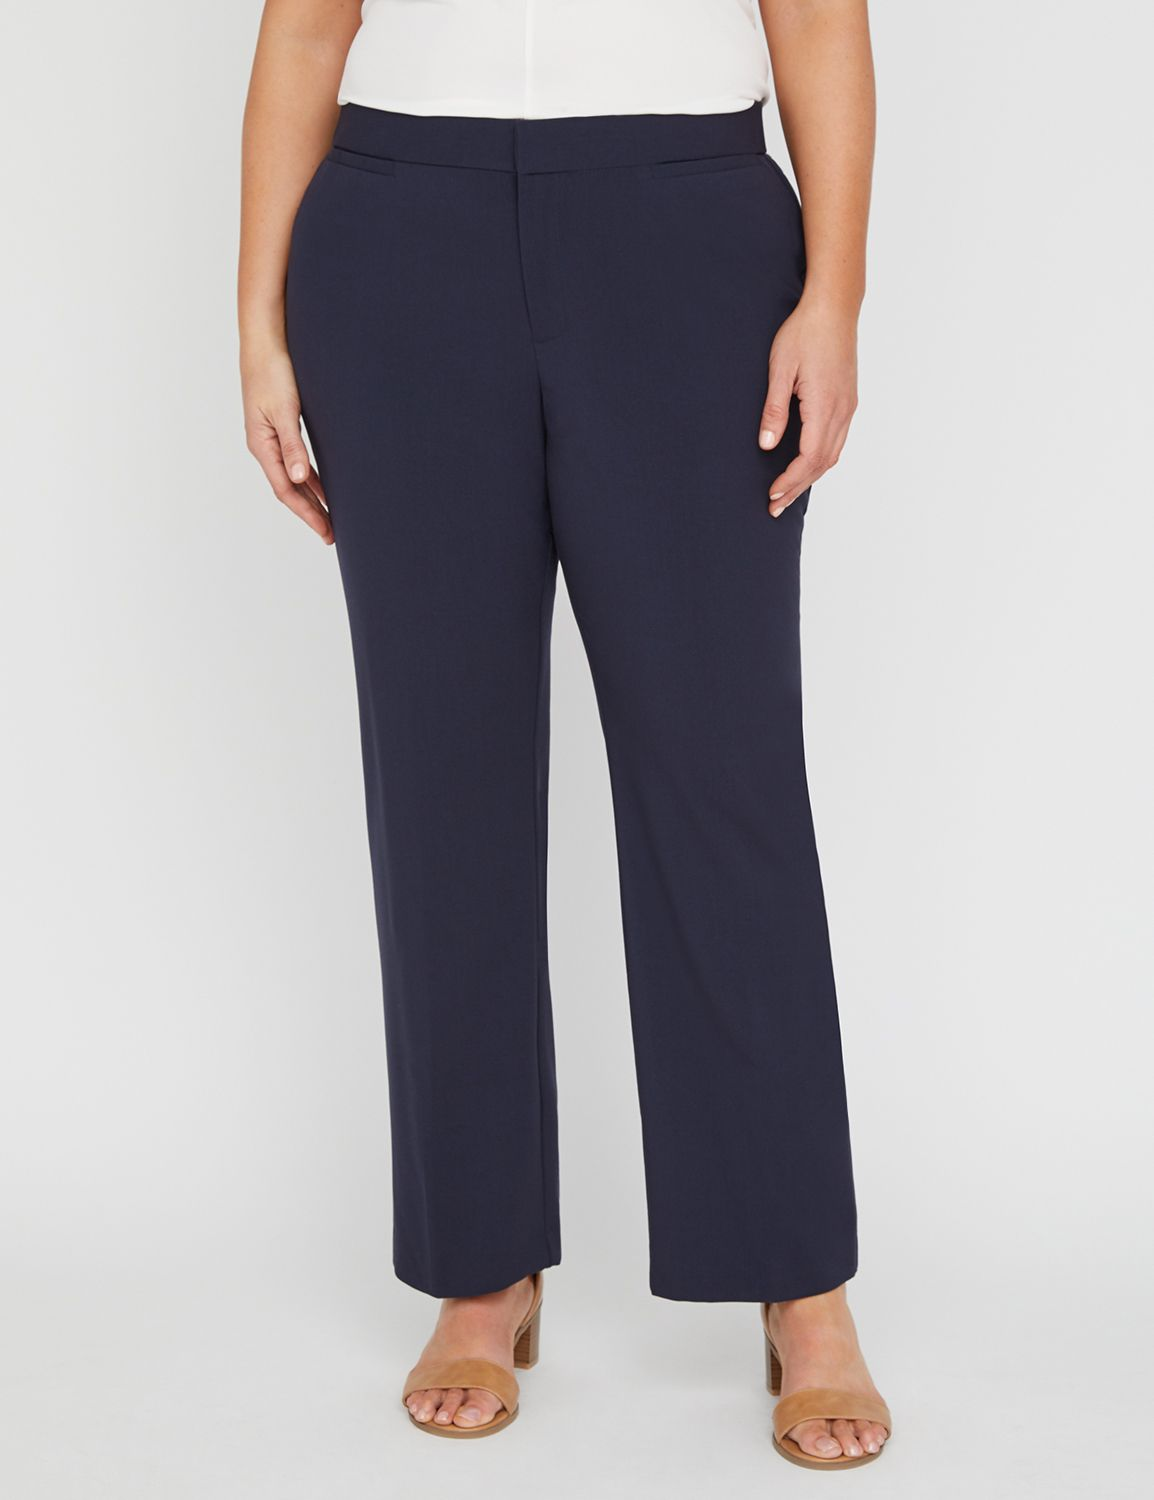 Right Fit Pant (Moderately Curvy) Right Fit Pant (Moderately Curvy) MP-300043673